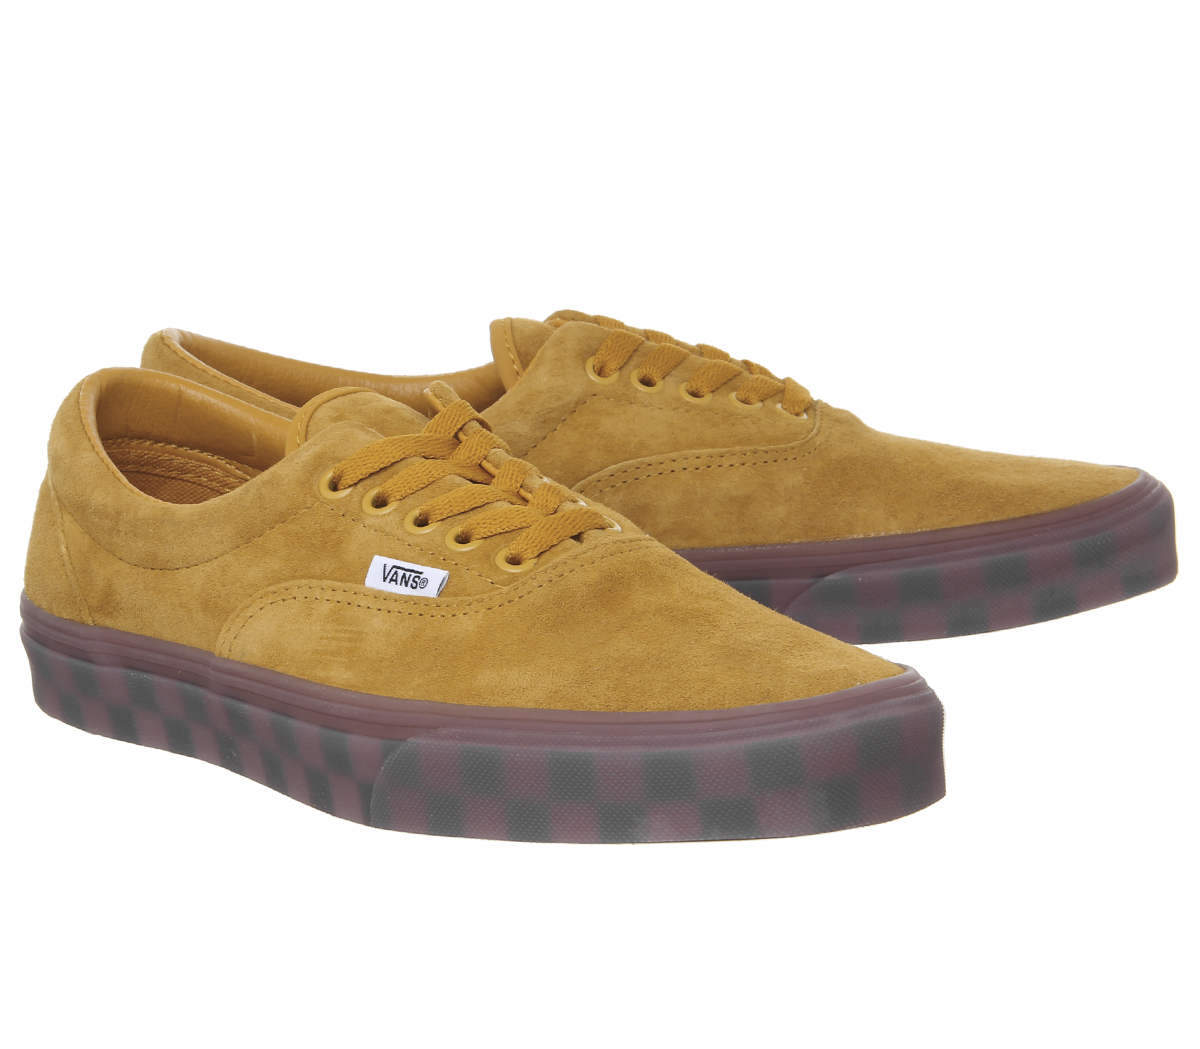 Sentinel Mens Vans Era Trainers Sunflower Checker Ice Sole Exclusive  Trainers Shoes 9037c0756